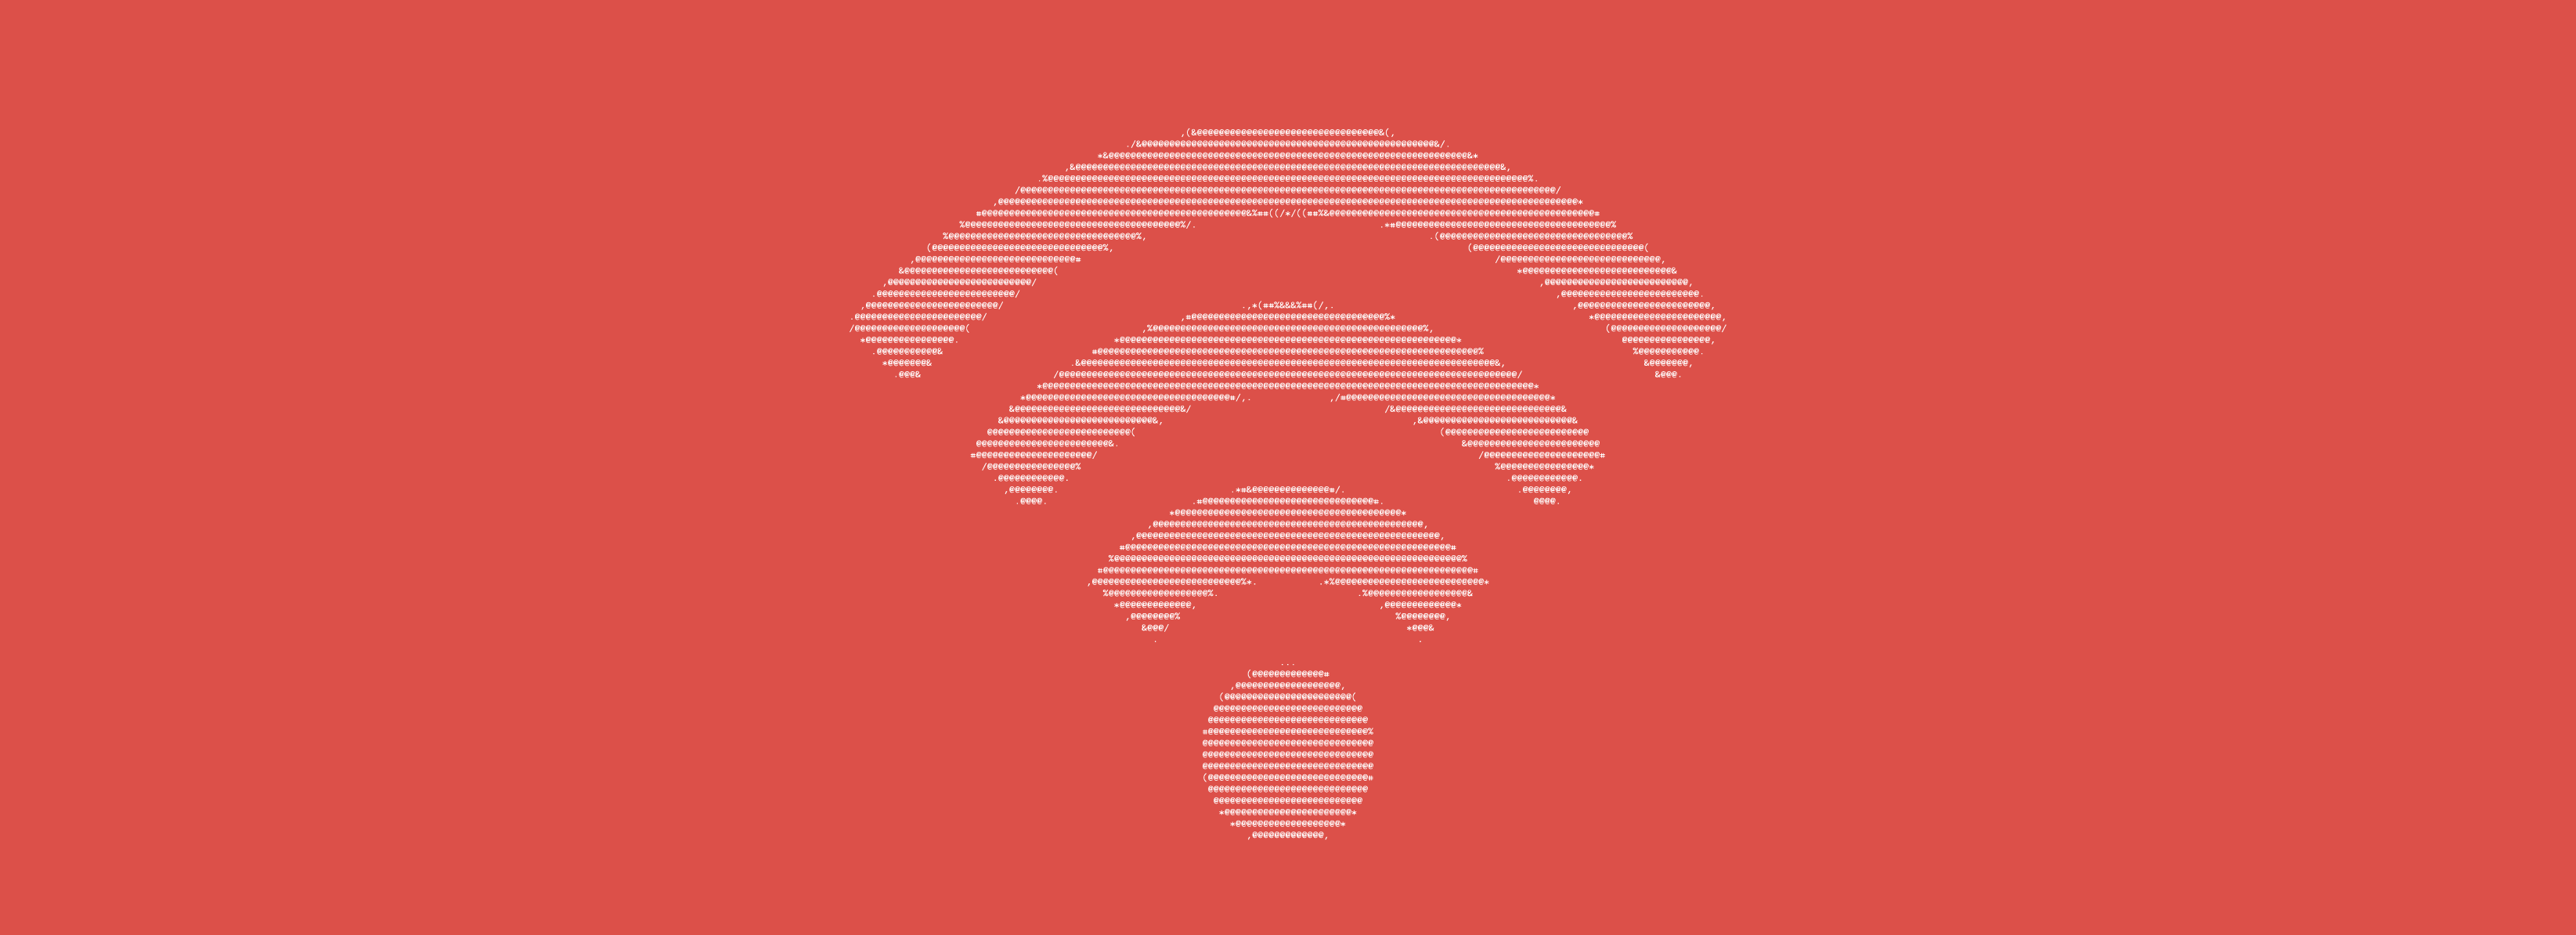 wifi.300a3feae3a9.png